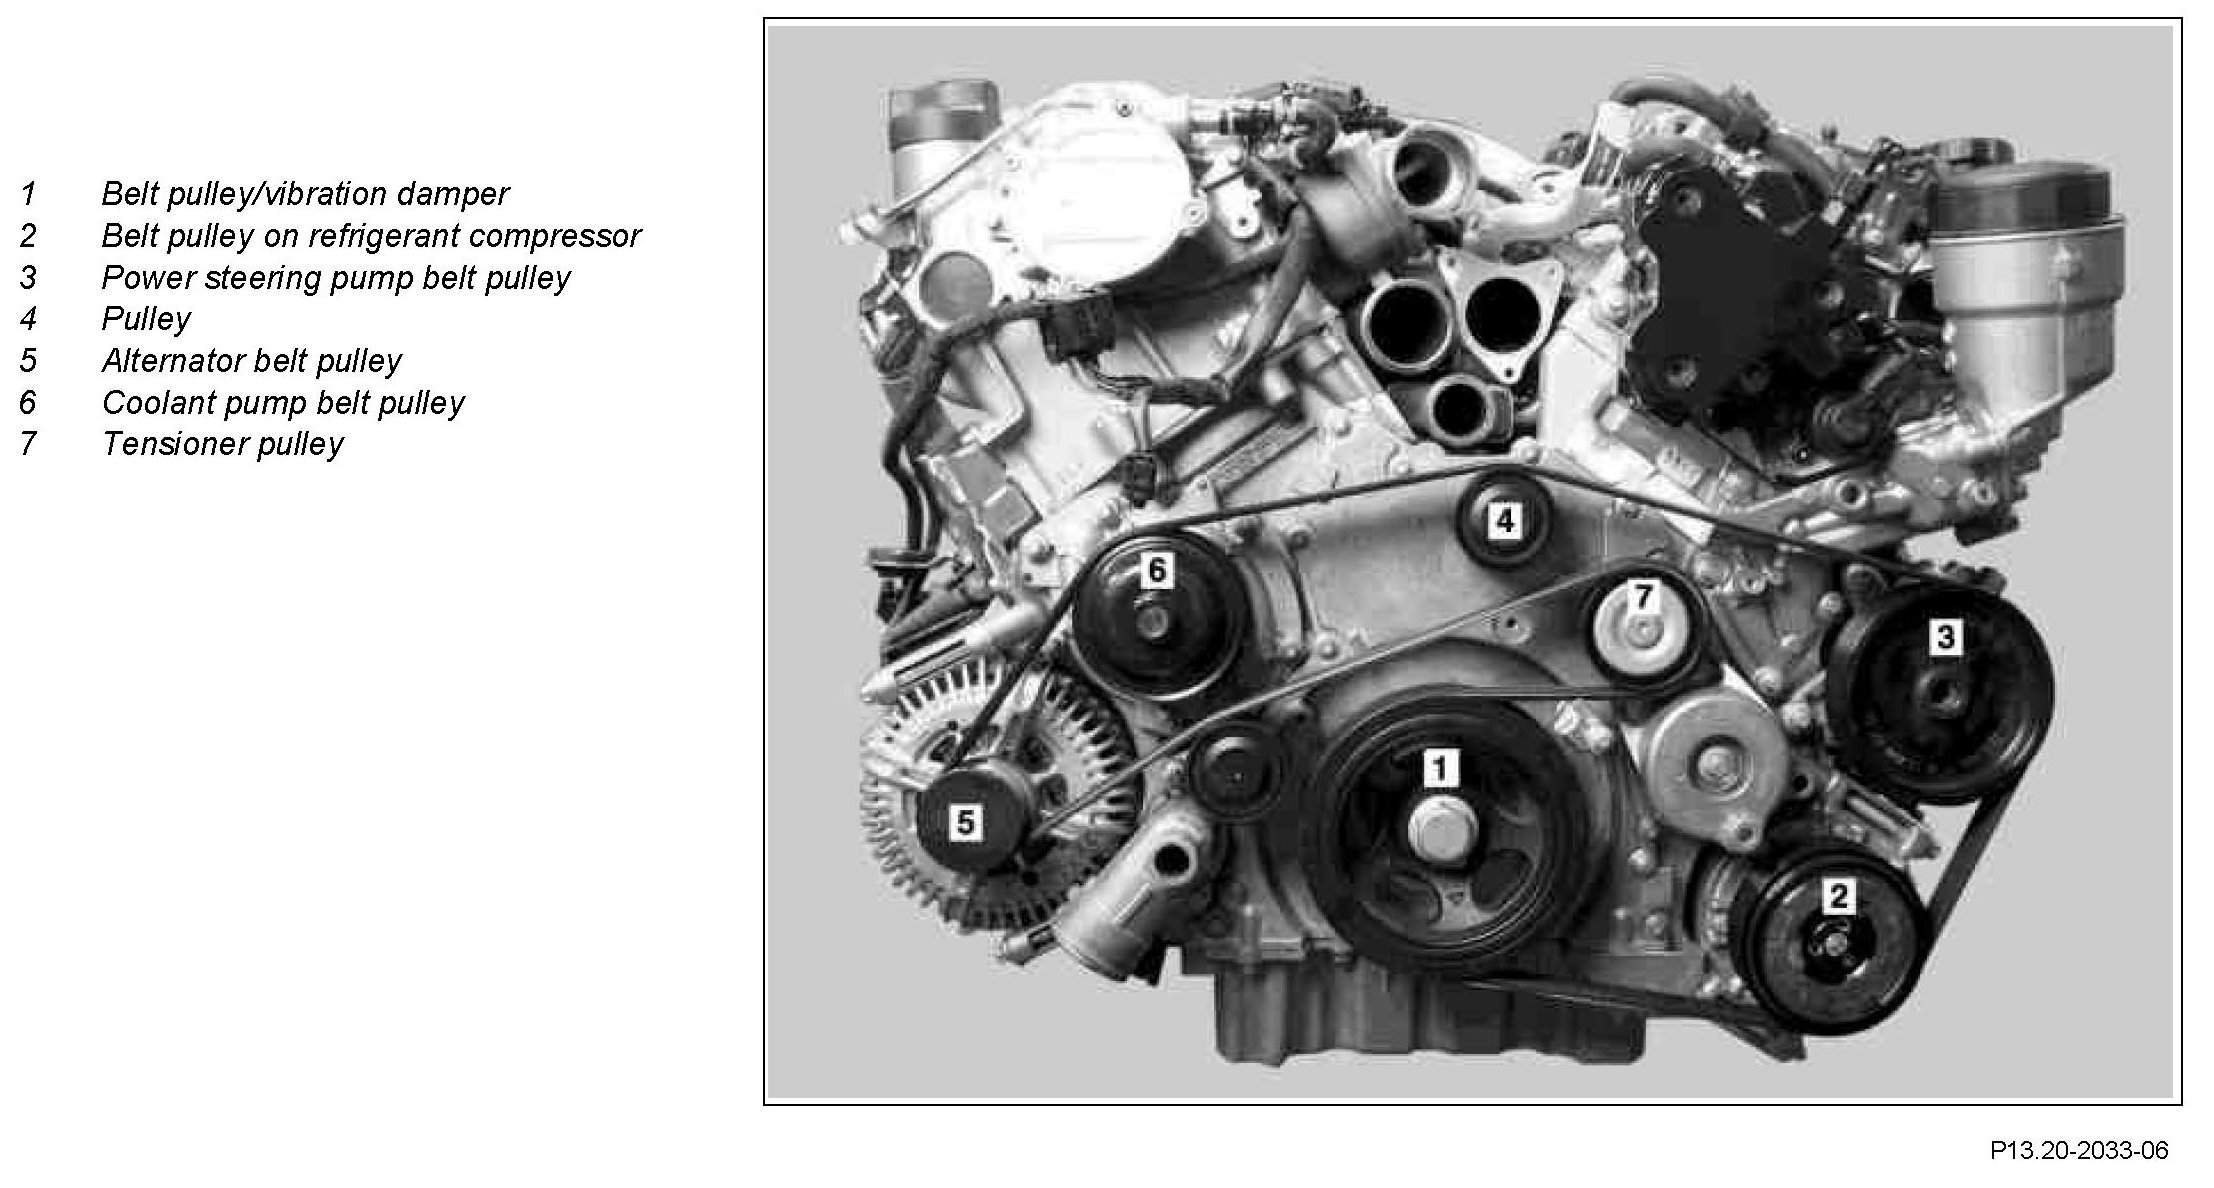 I Need The Belt Diagram For A Ml350 Cdi 2010 Model